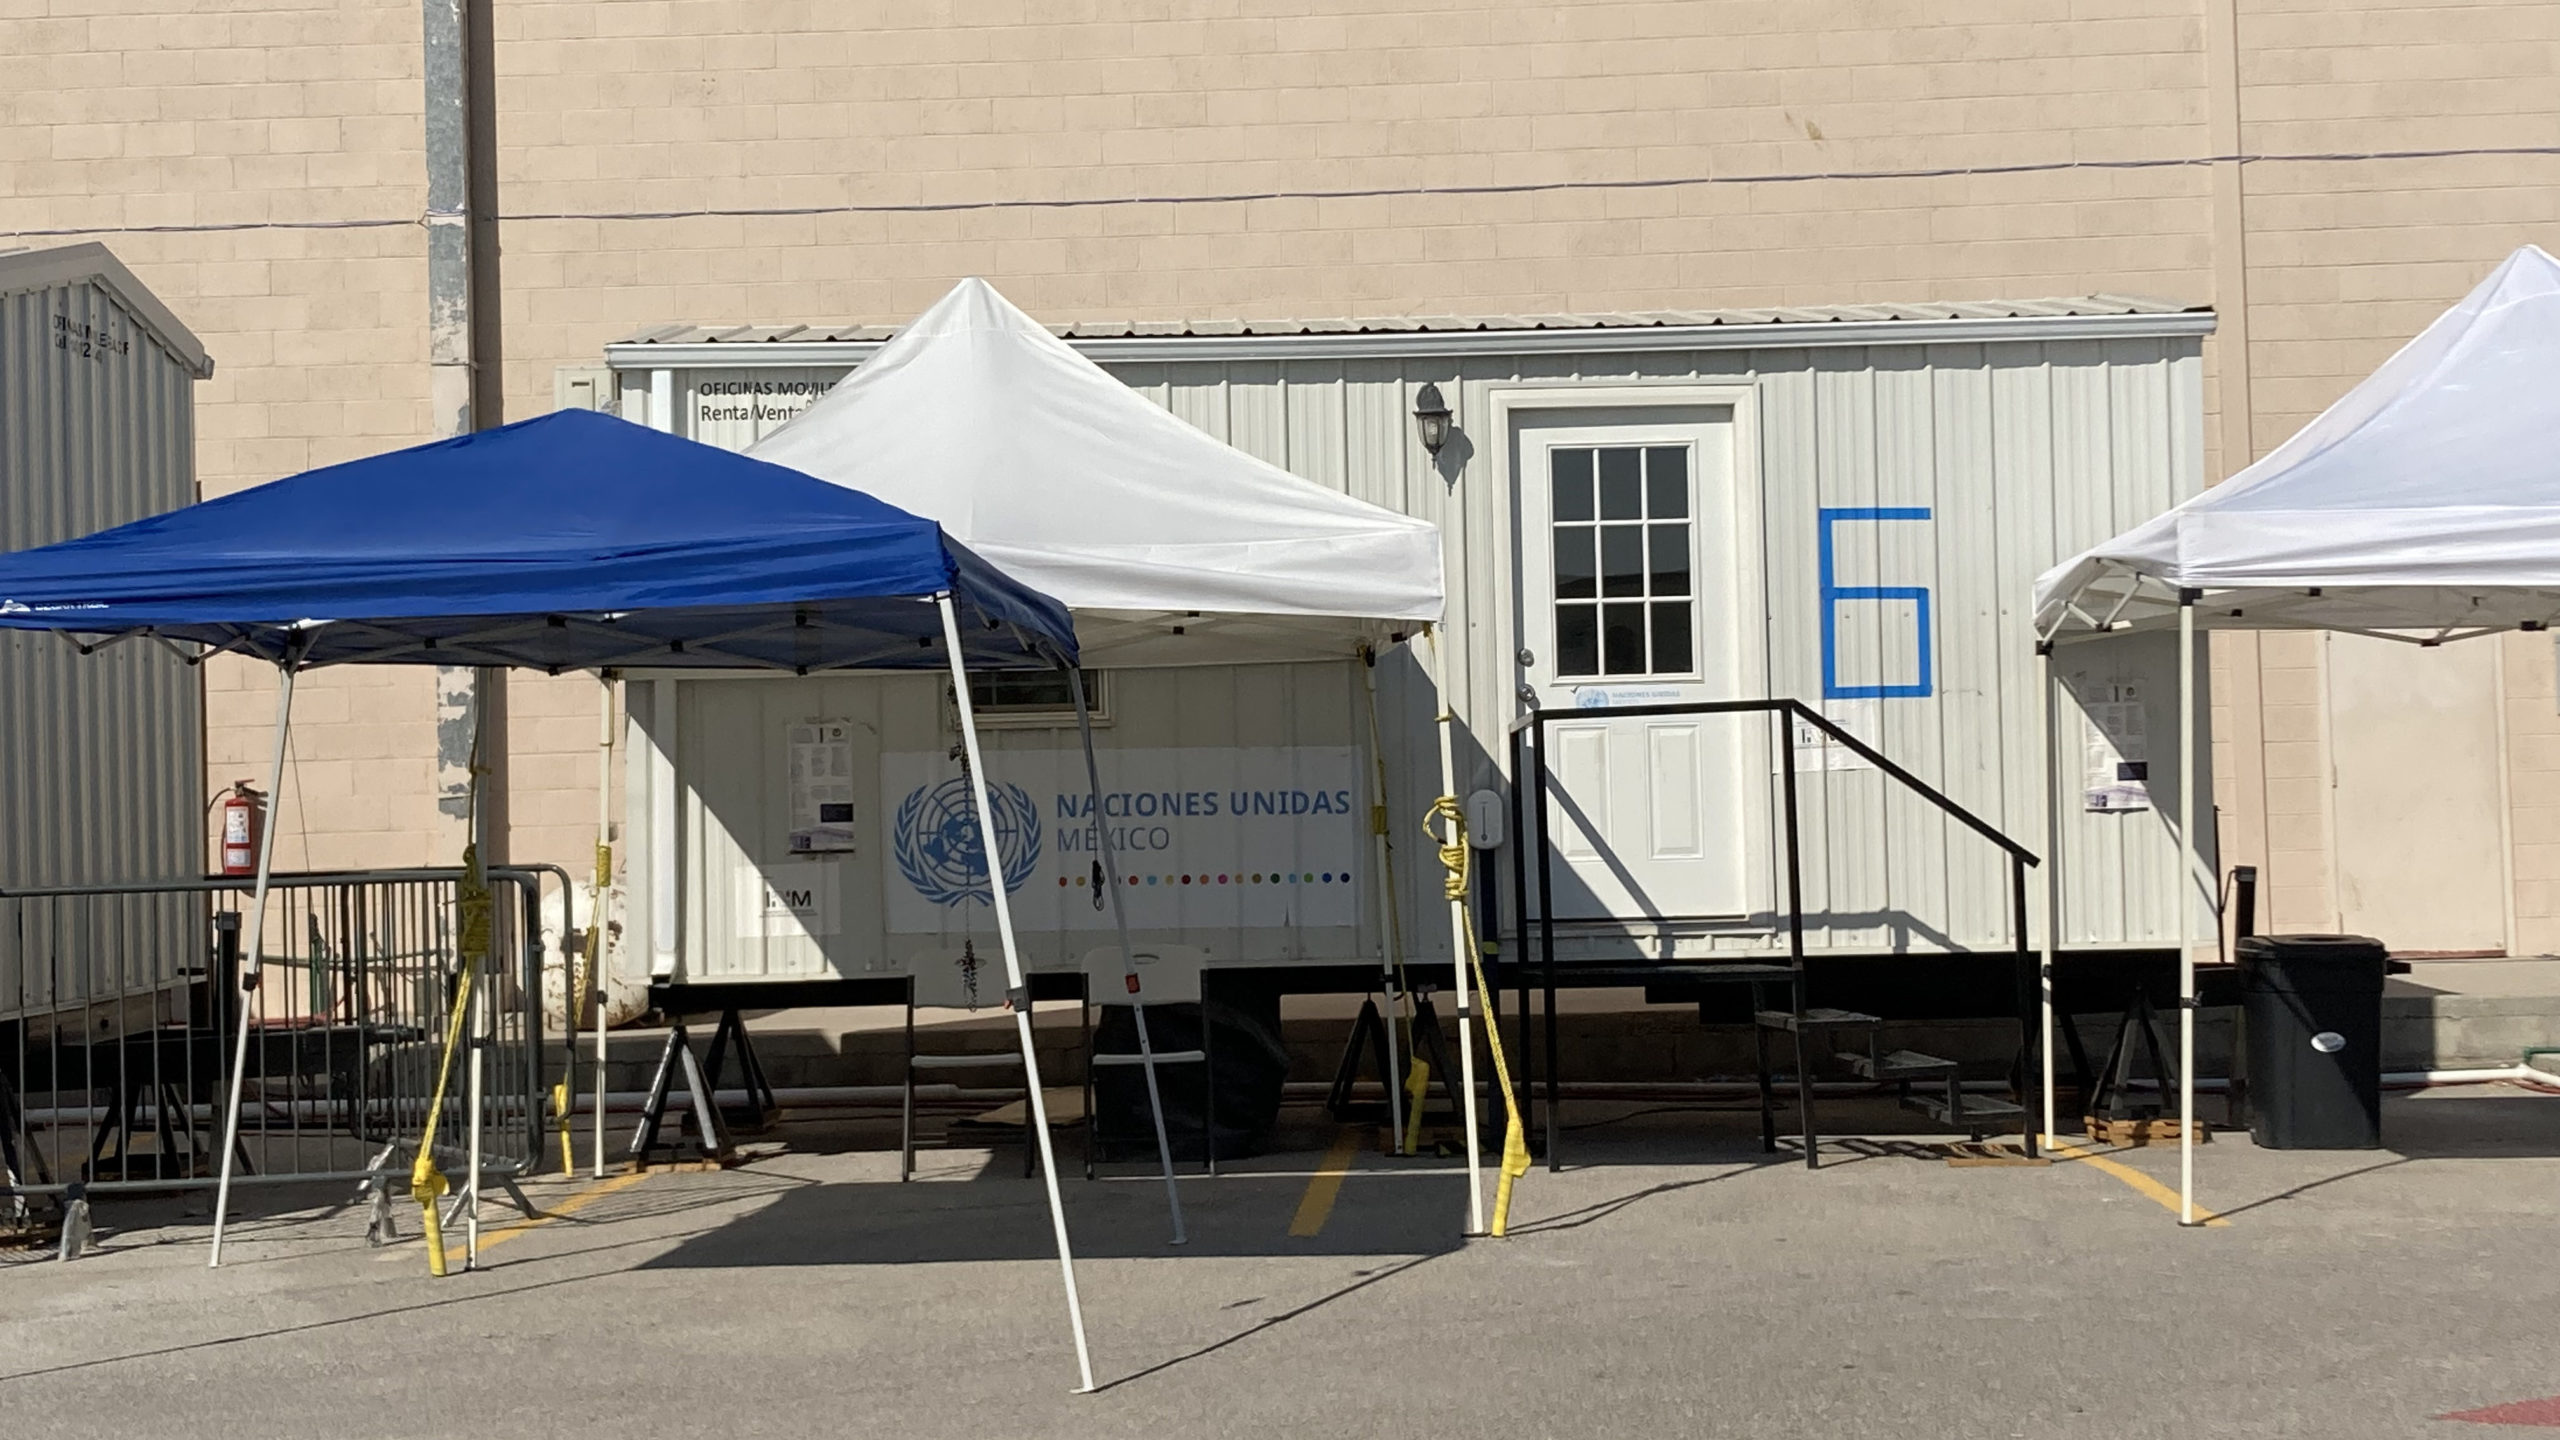 A photo of a UN trailer used to provide legal services.